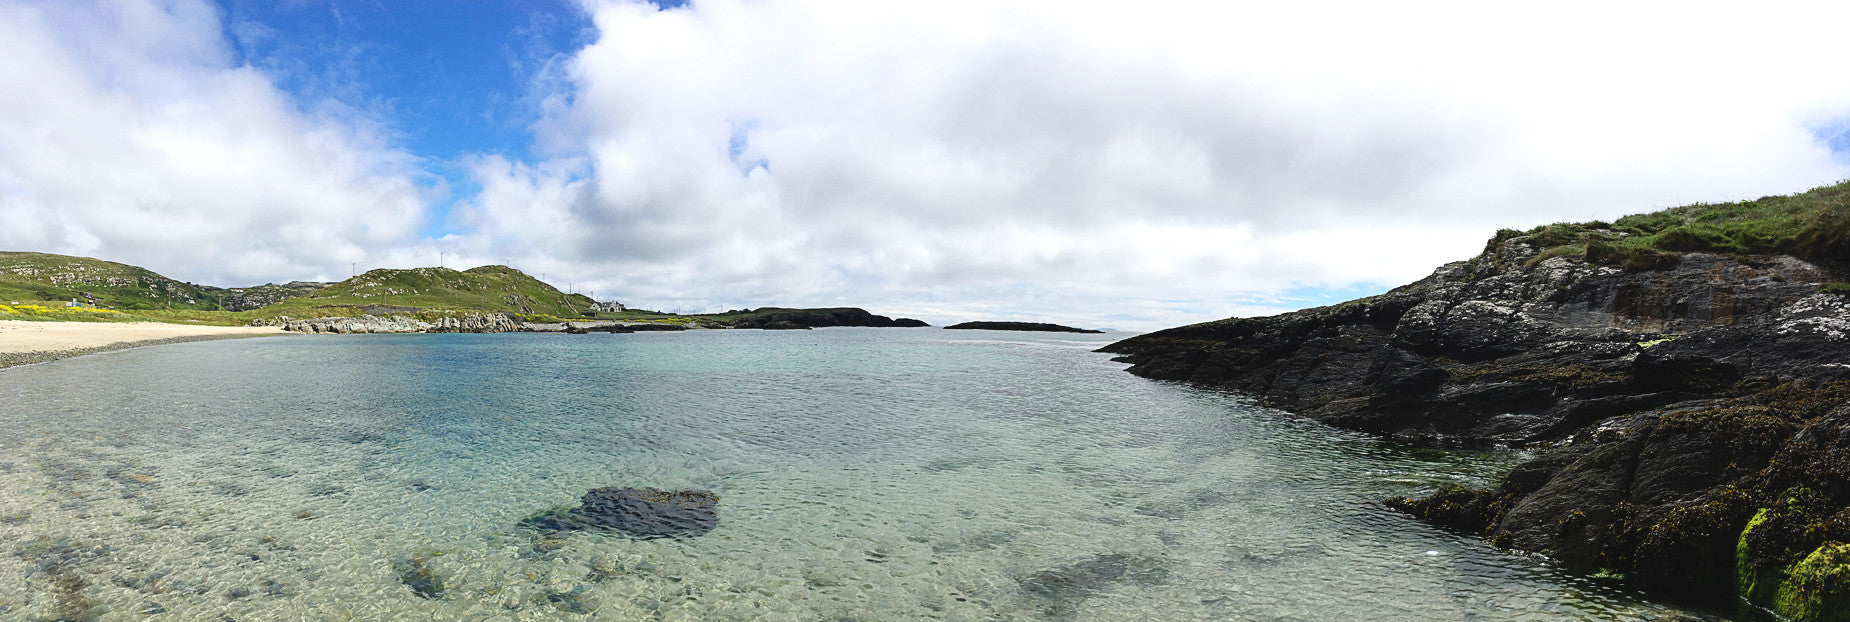 Galley Cove,Crookhaven, Co. Cork, Ireland